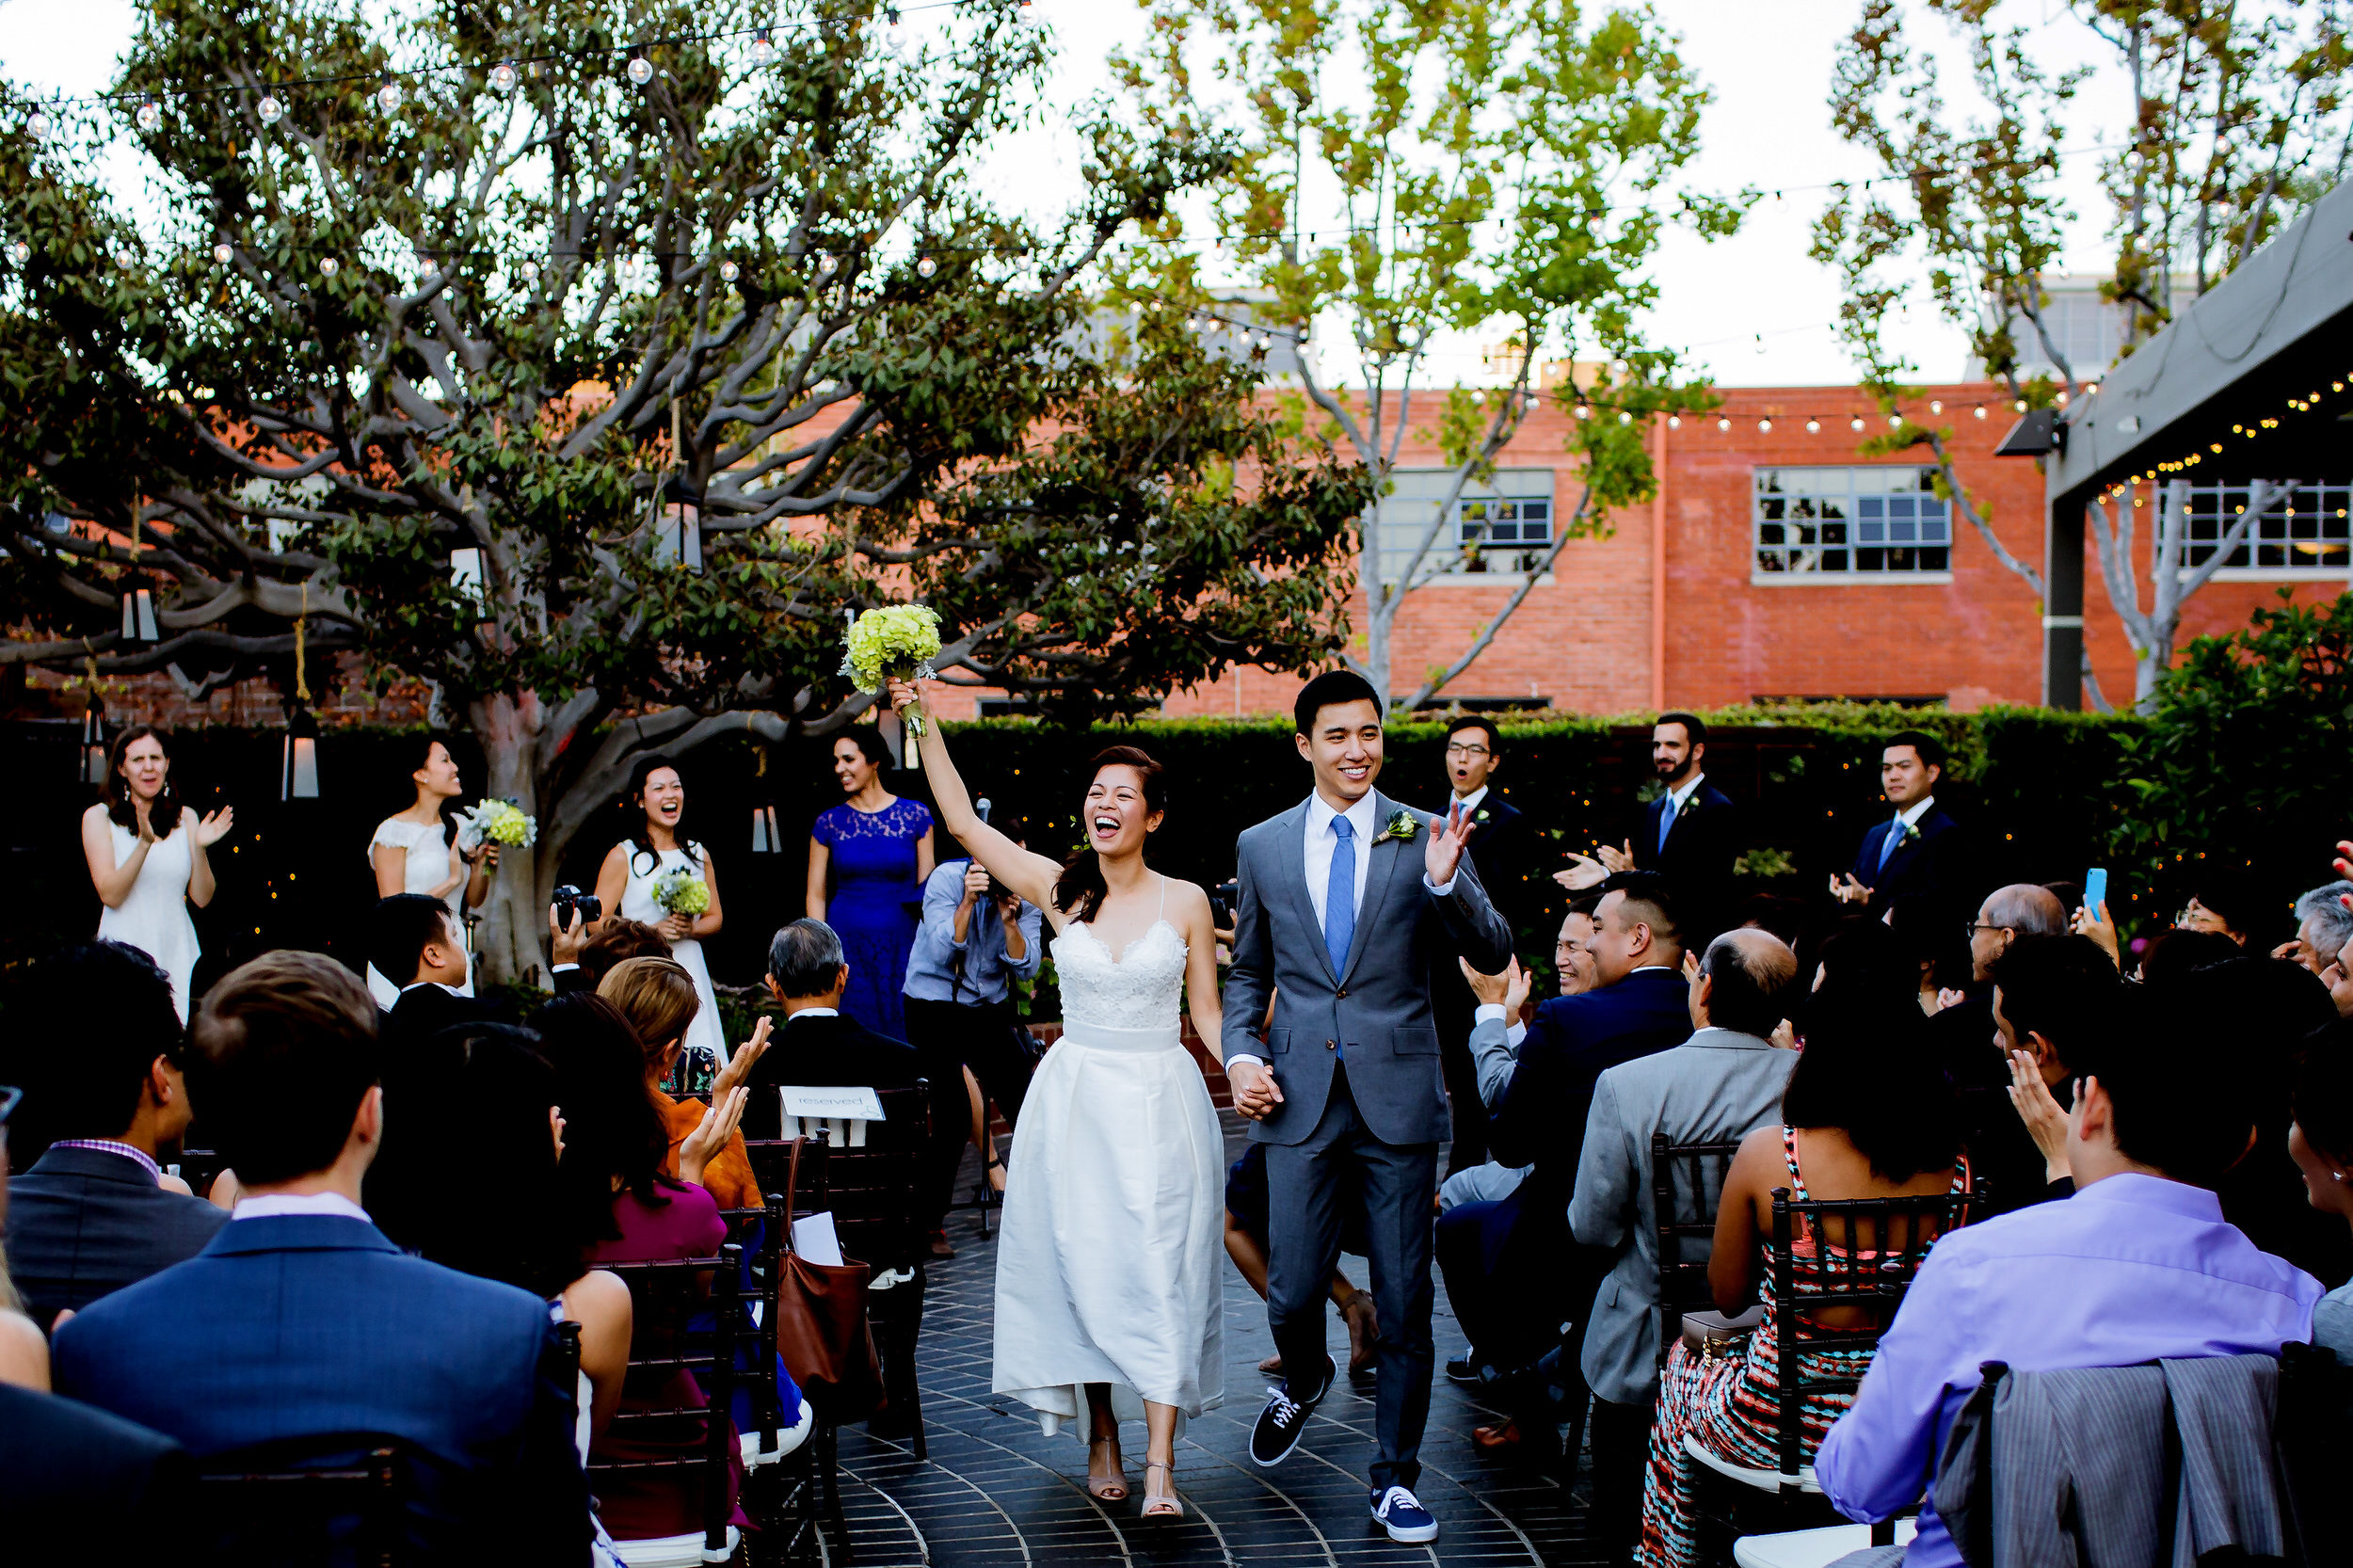 A fun LA Wedding in the city of Santa Monica at a great urban venue - Tiato Kitchen Market Garden Venue Wedding Santa Monica_005